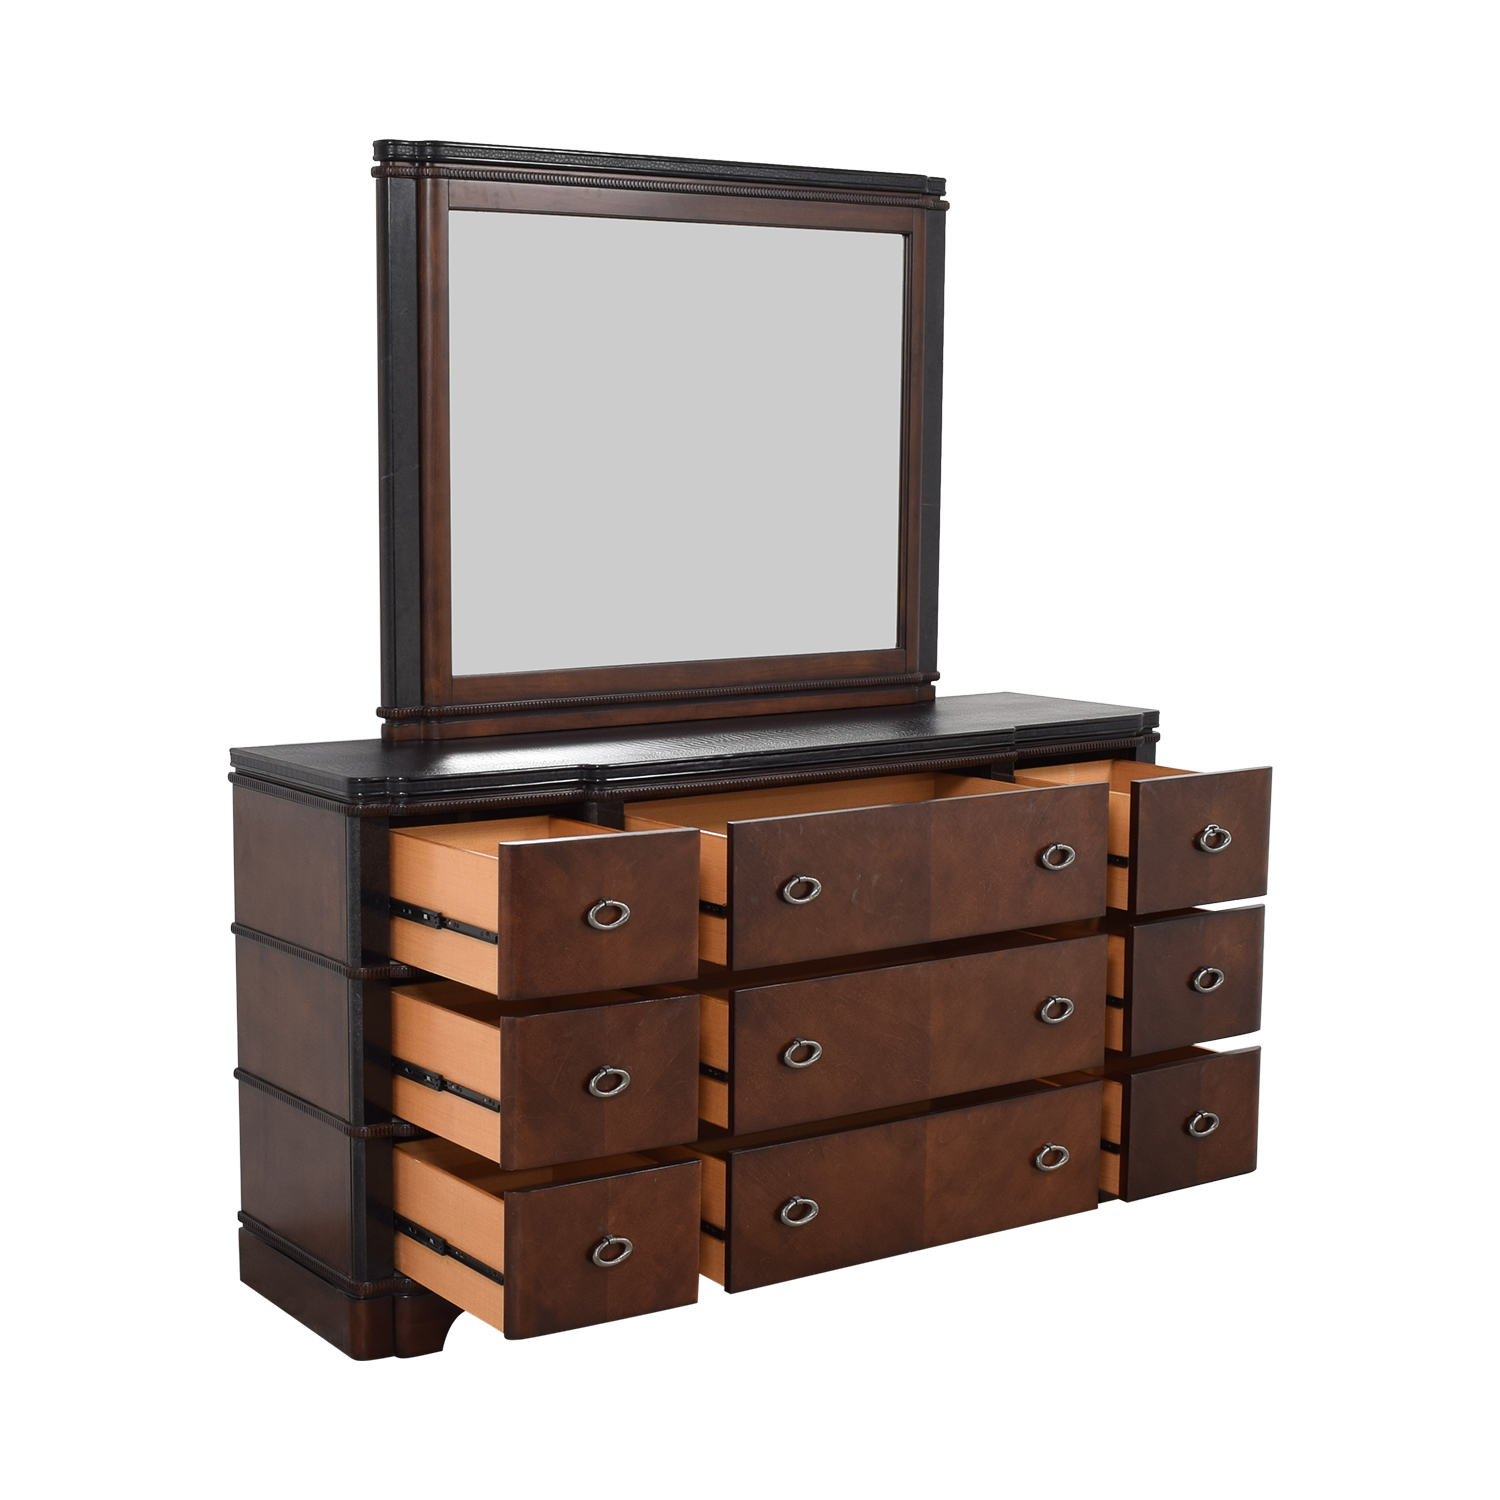 shop Raymour & Flanigan Raymour & Flanigan Dundee Bedroom Dresser with Mirror online